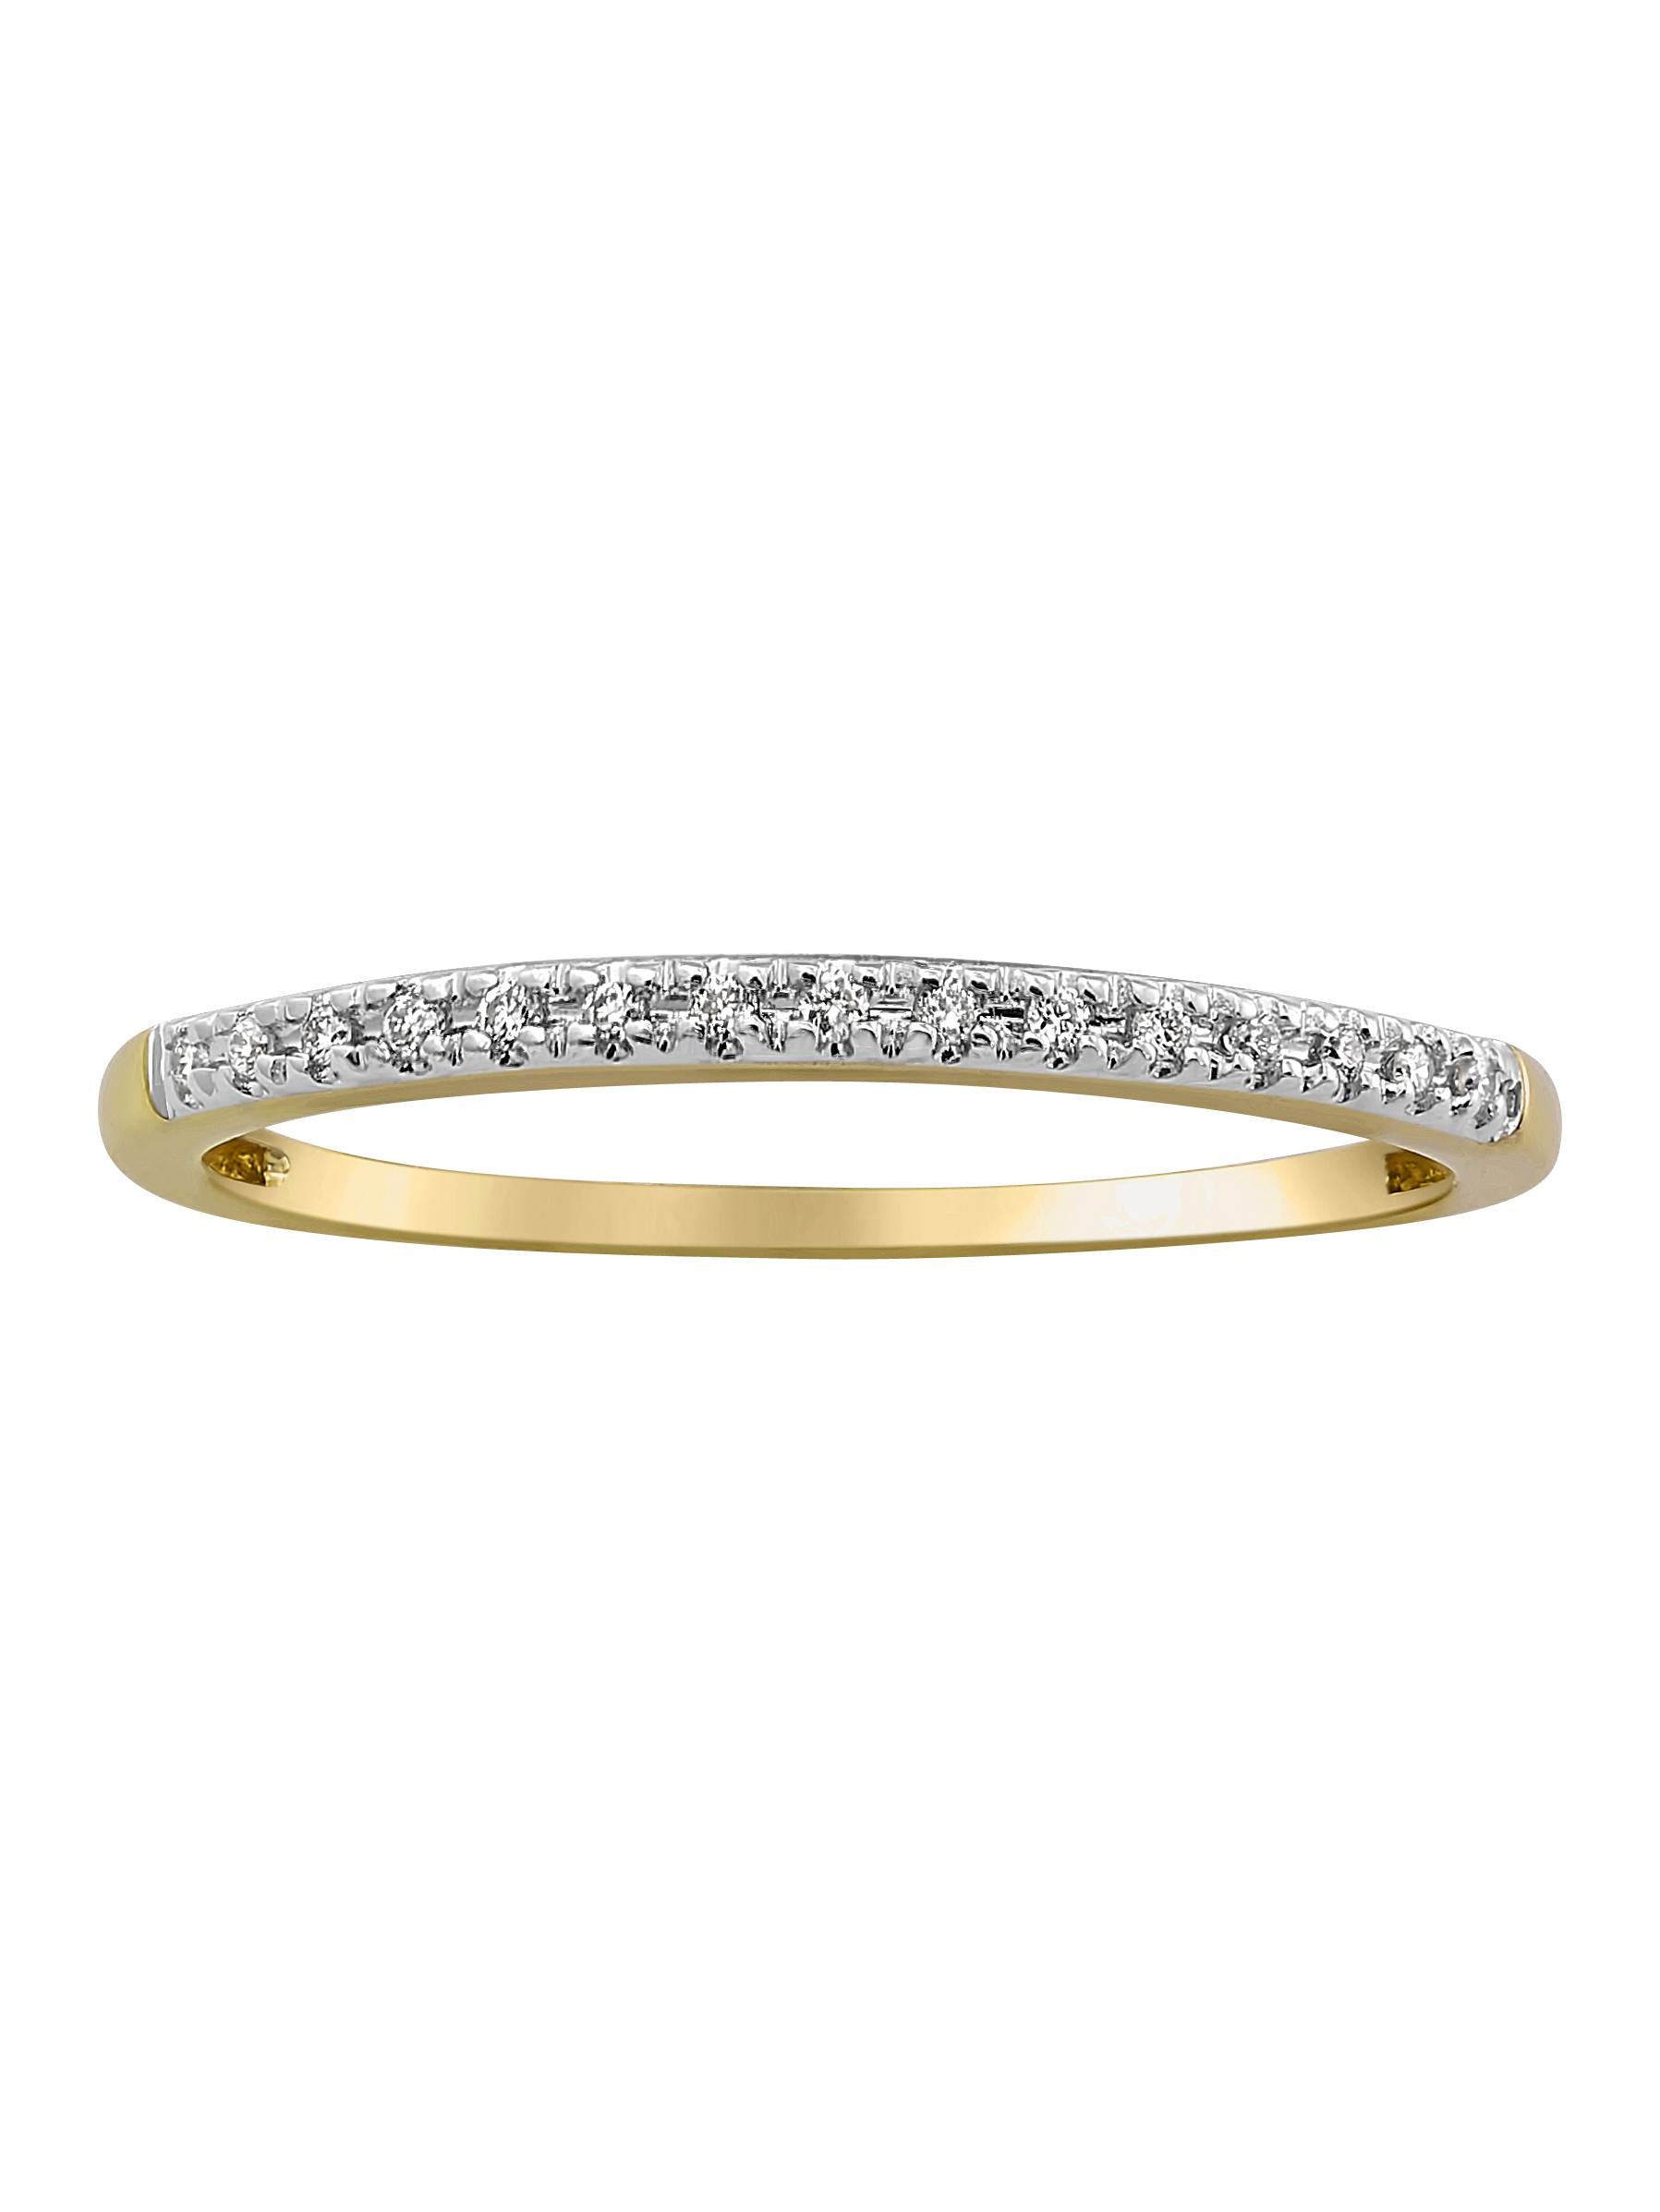 10kt Yellow Gold Diamond Accent Anniversary Band Ring Within Most Recent Diamond Accent Anniversary Bands In Gold (View 5 of 25)